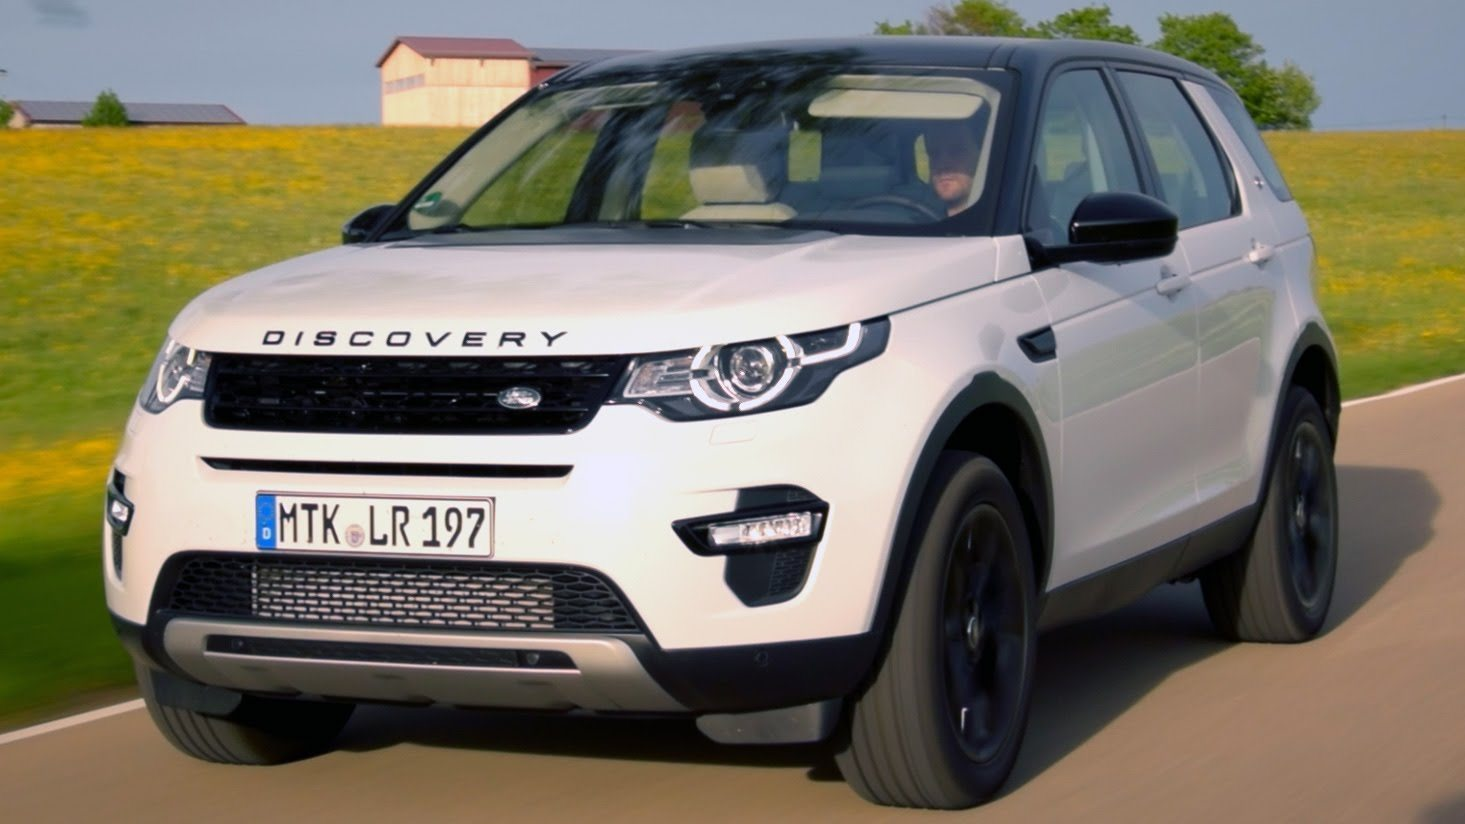 2018 land rover discovery sport hse luxury car 2018 land rover discovery sport car price. Black Bedroom Furniture Sets. Home Design Ideas